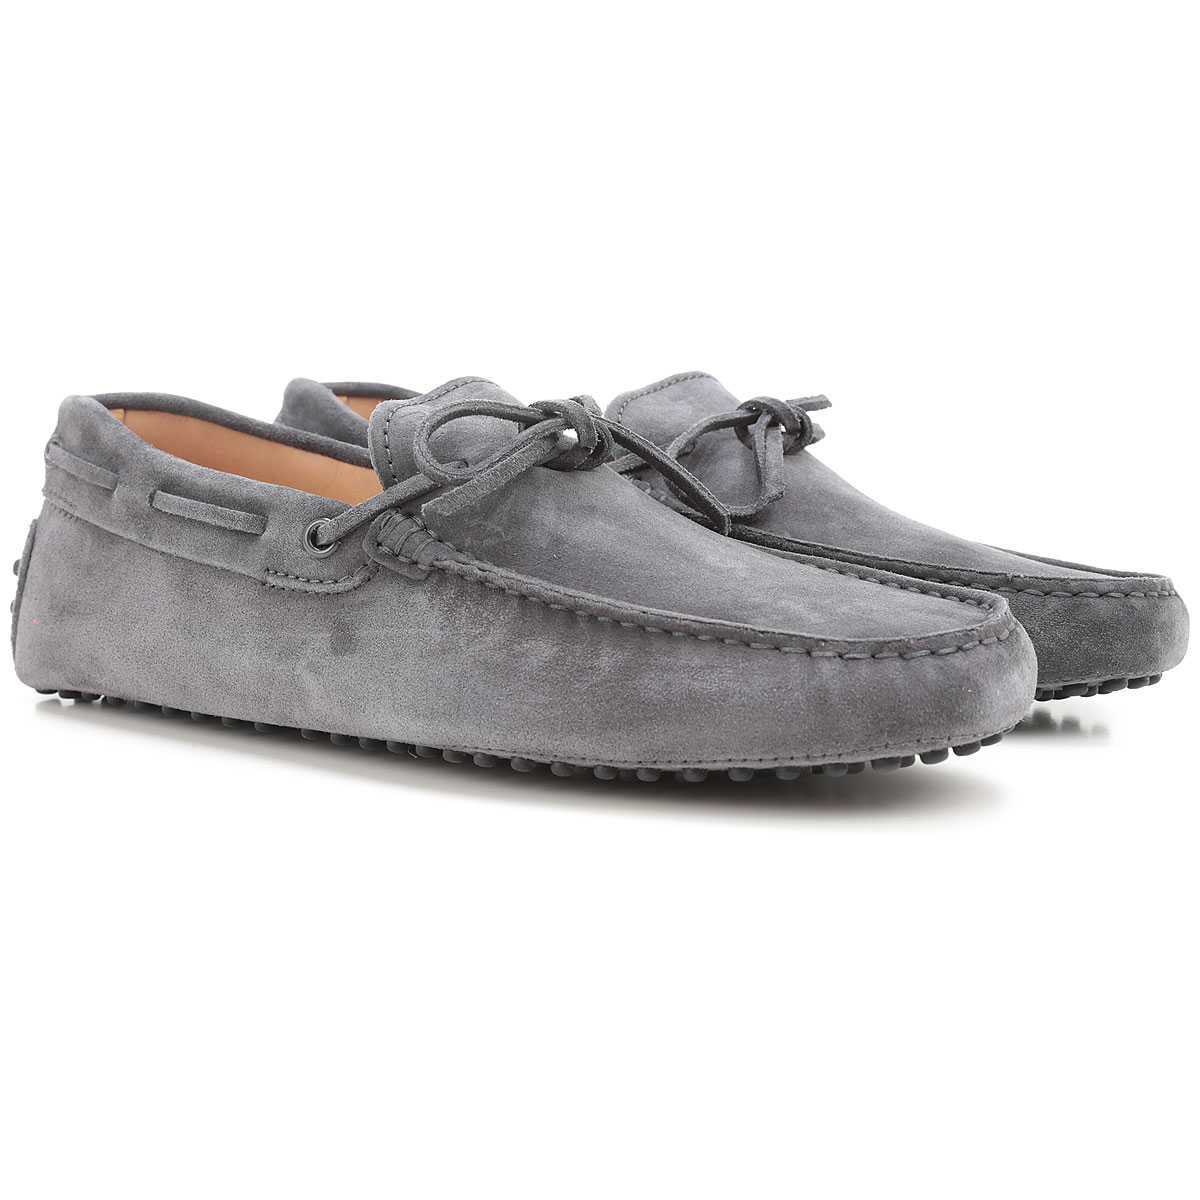 Tods Driver Loafer Shoes for Men On Sale shadow SE - GOOFASH